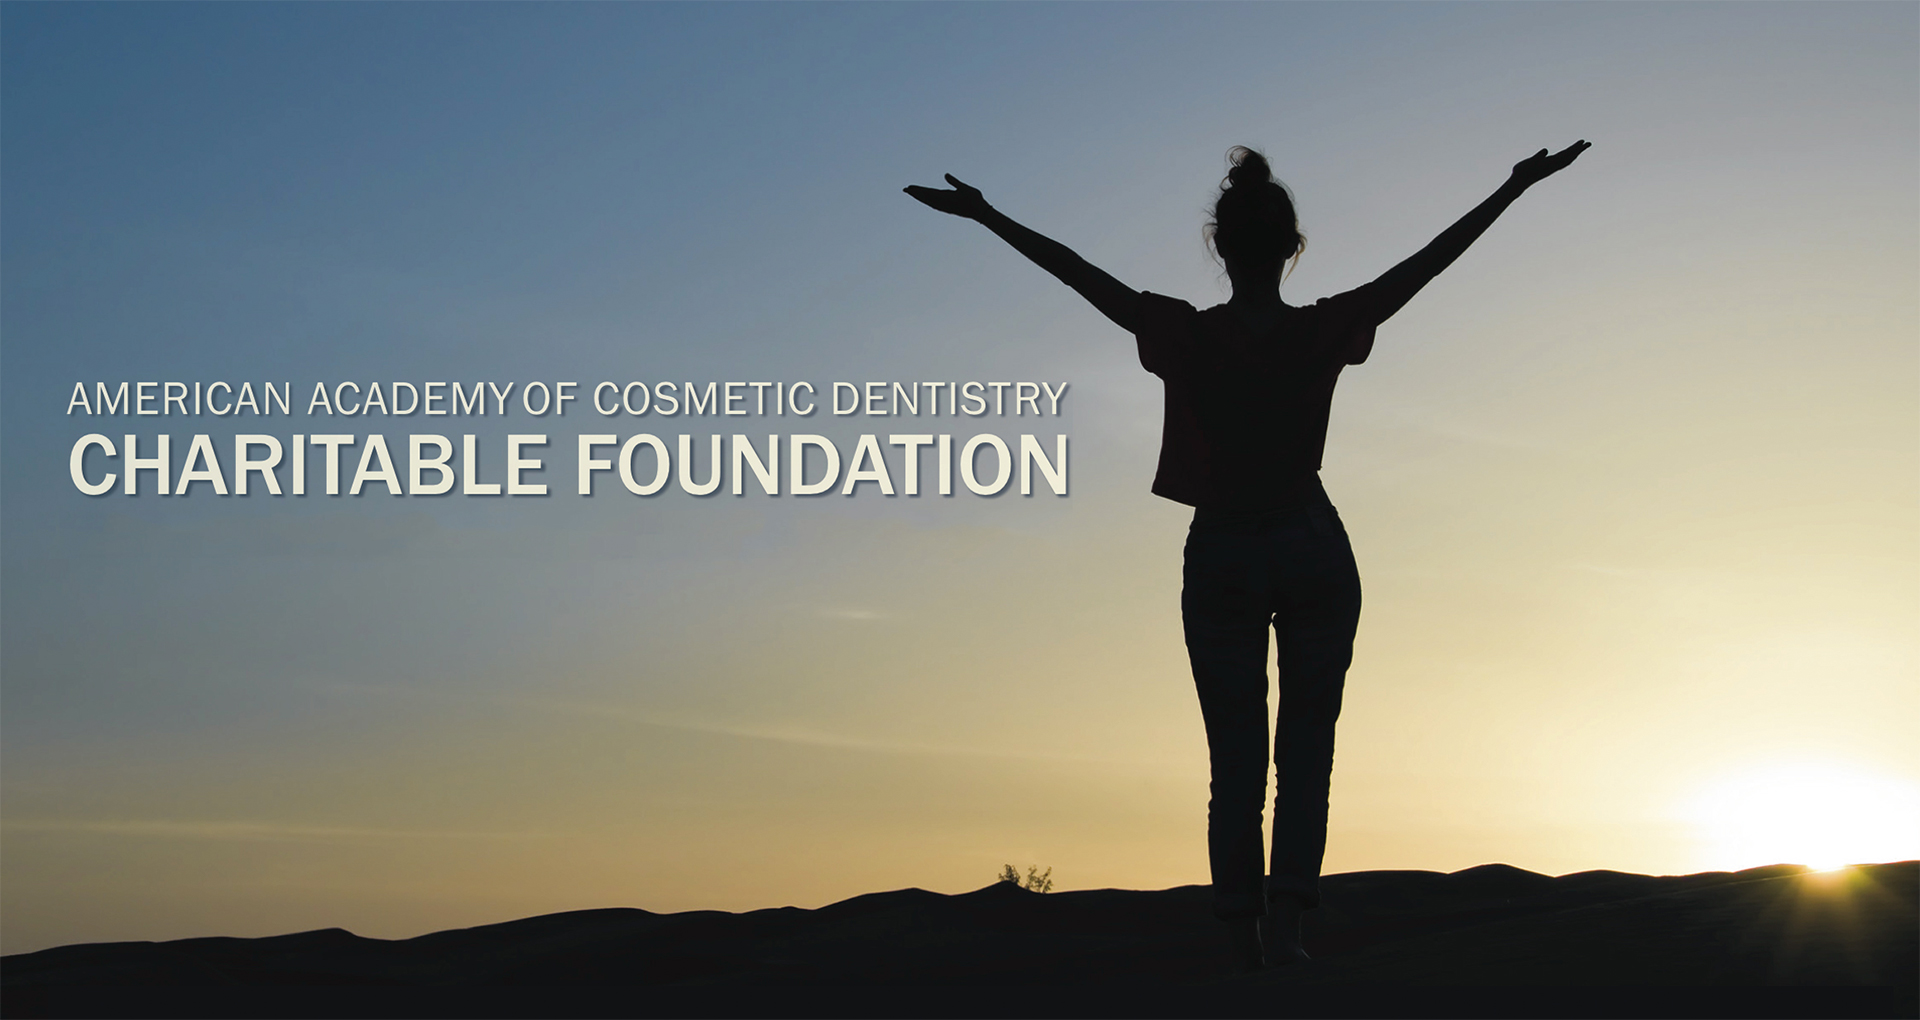 American Academy of Cosmetic Dentistry Charitable Foundation